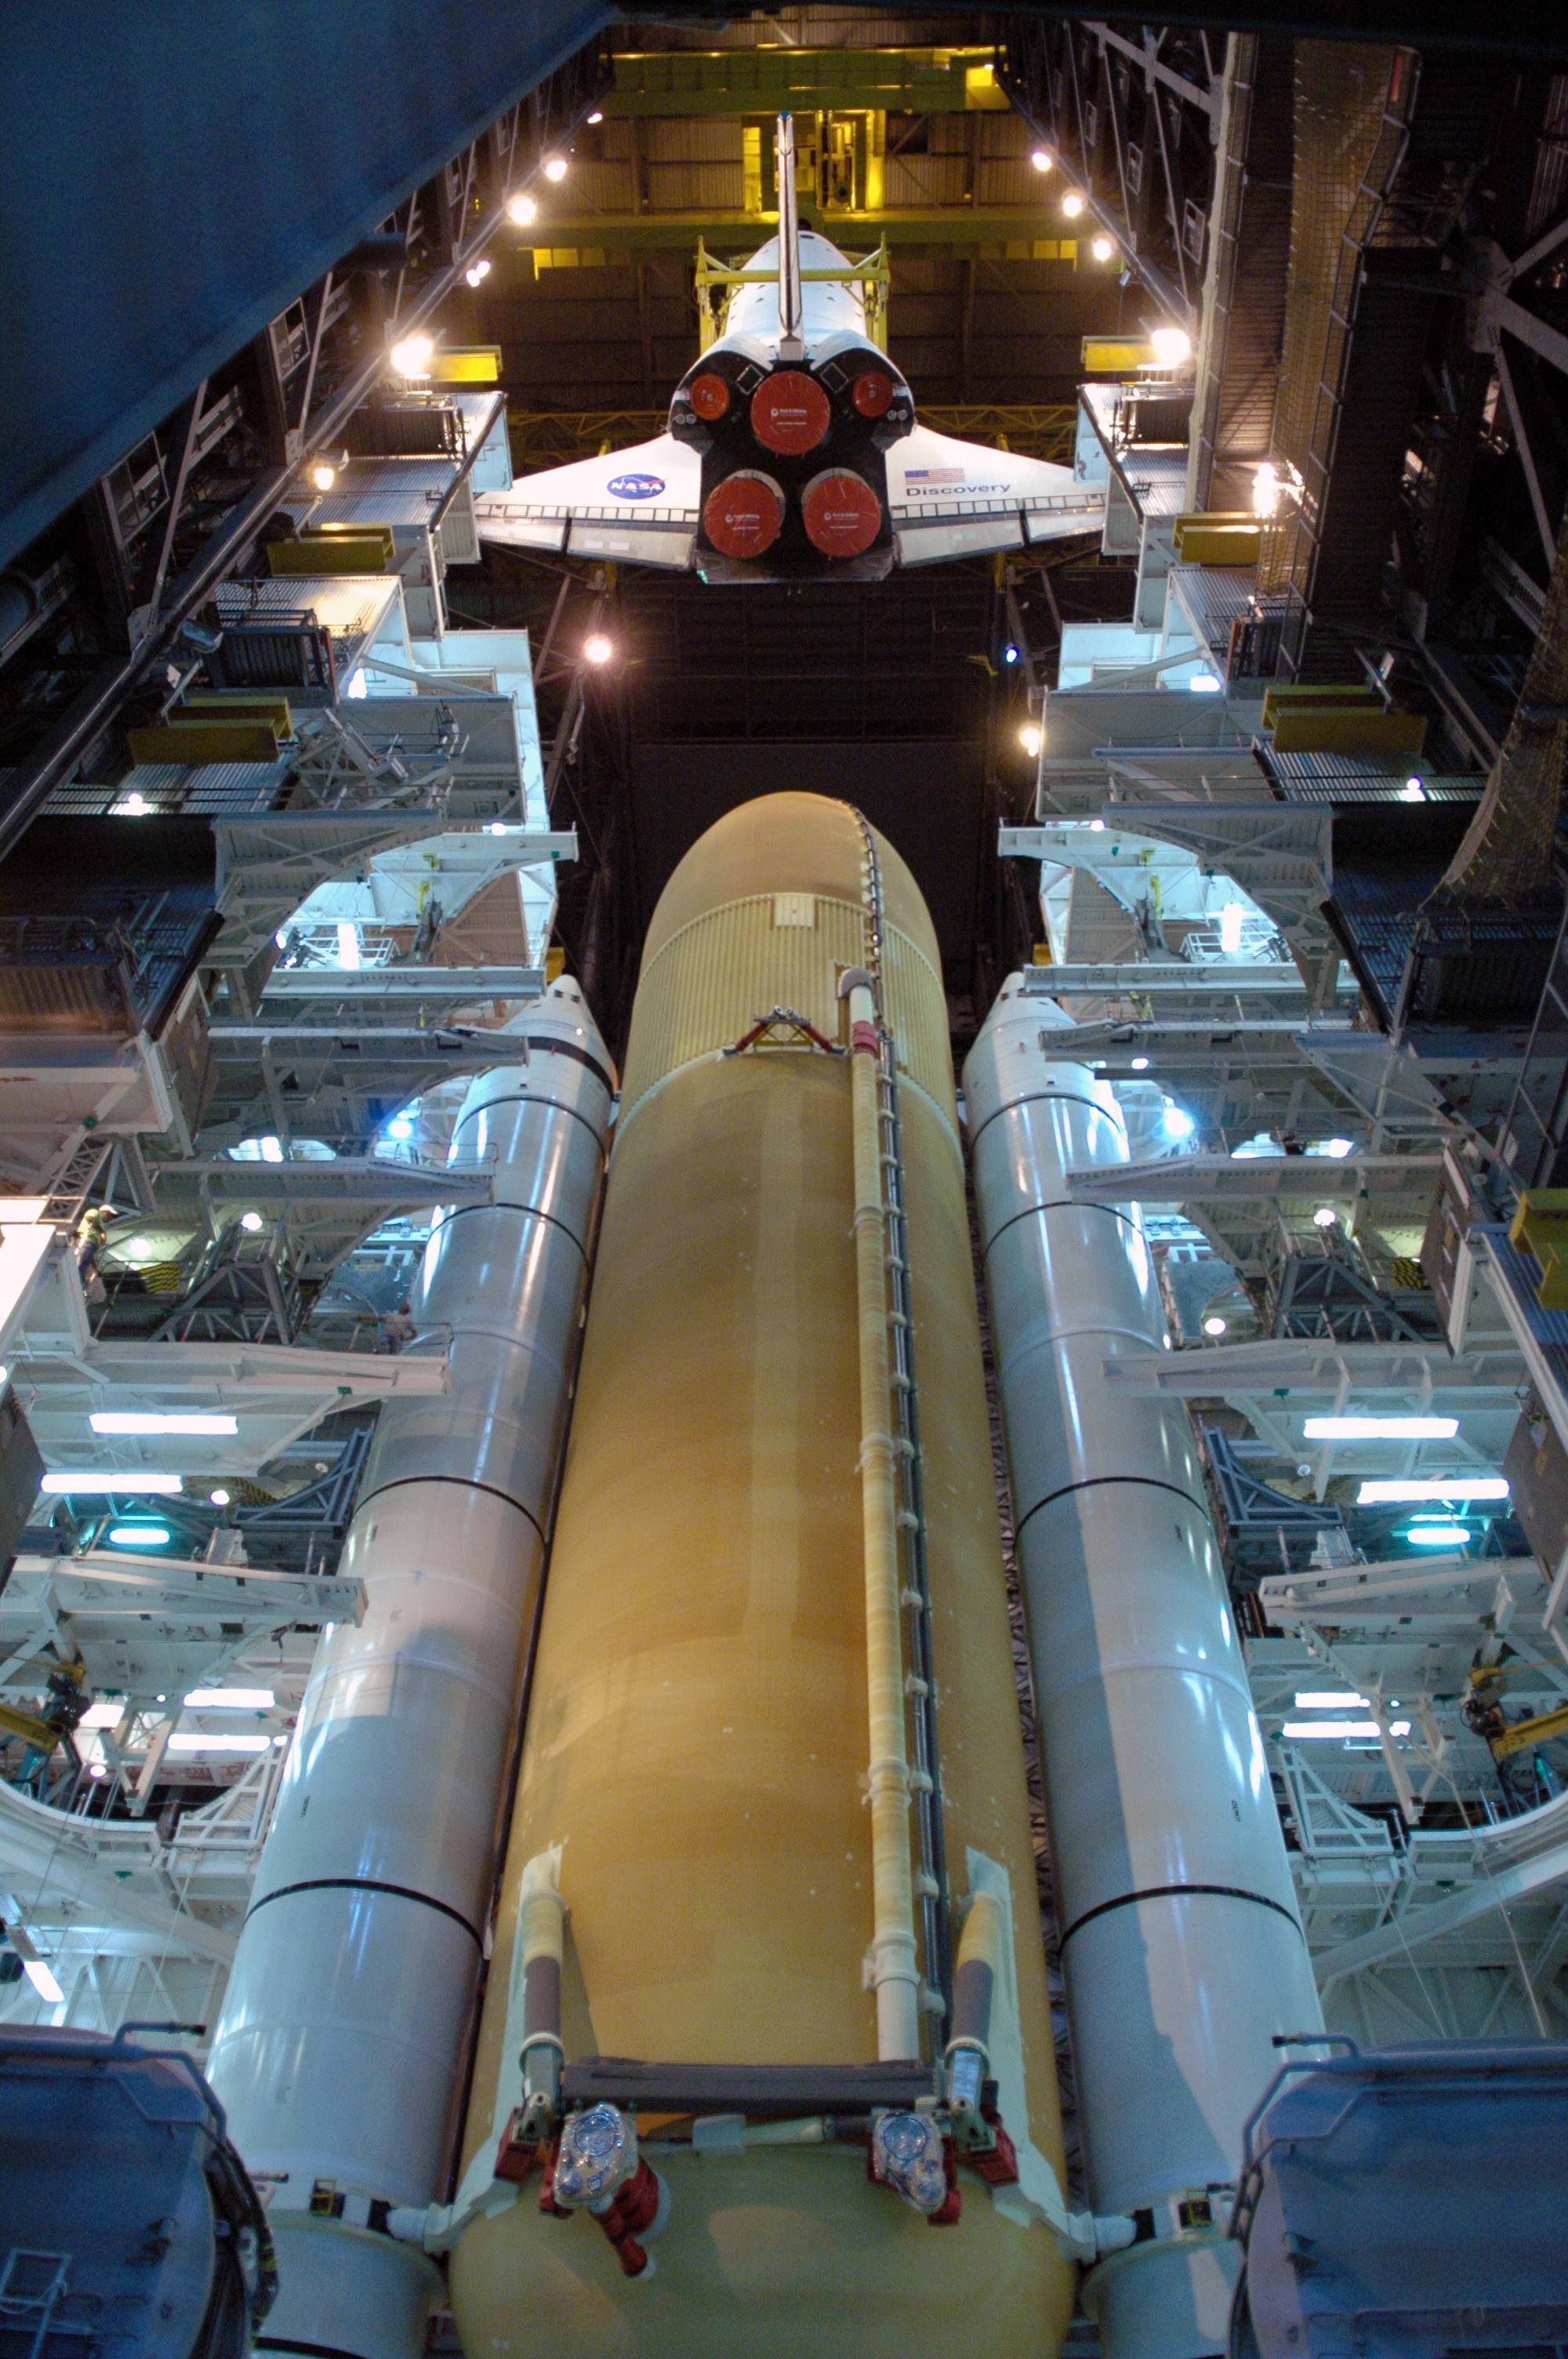 space shuttle solid rocket boster beams - photo #2